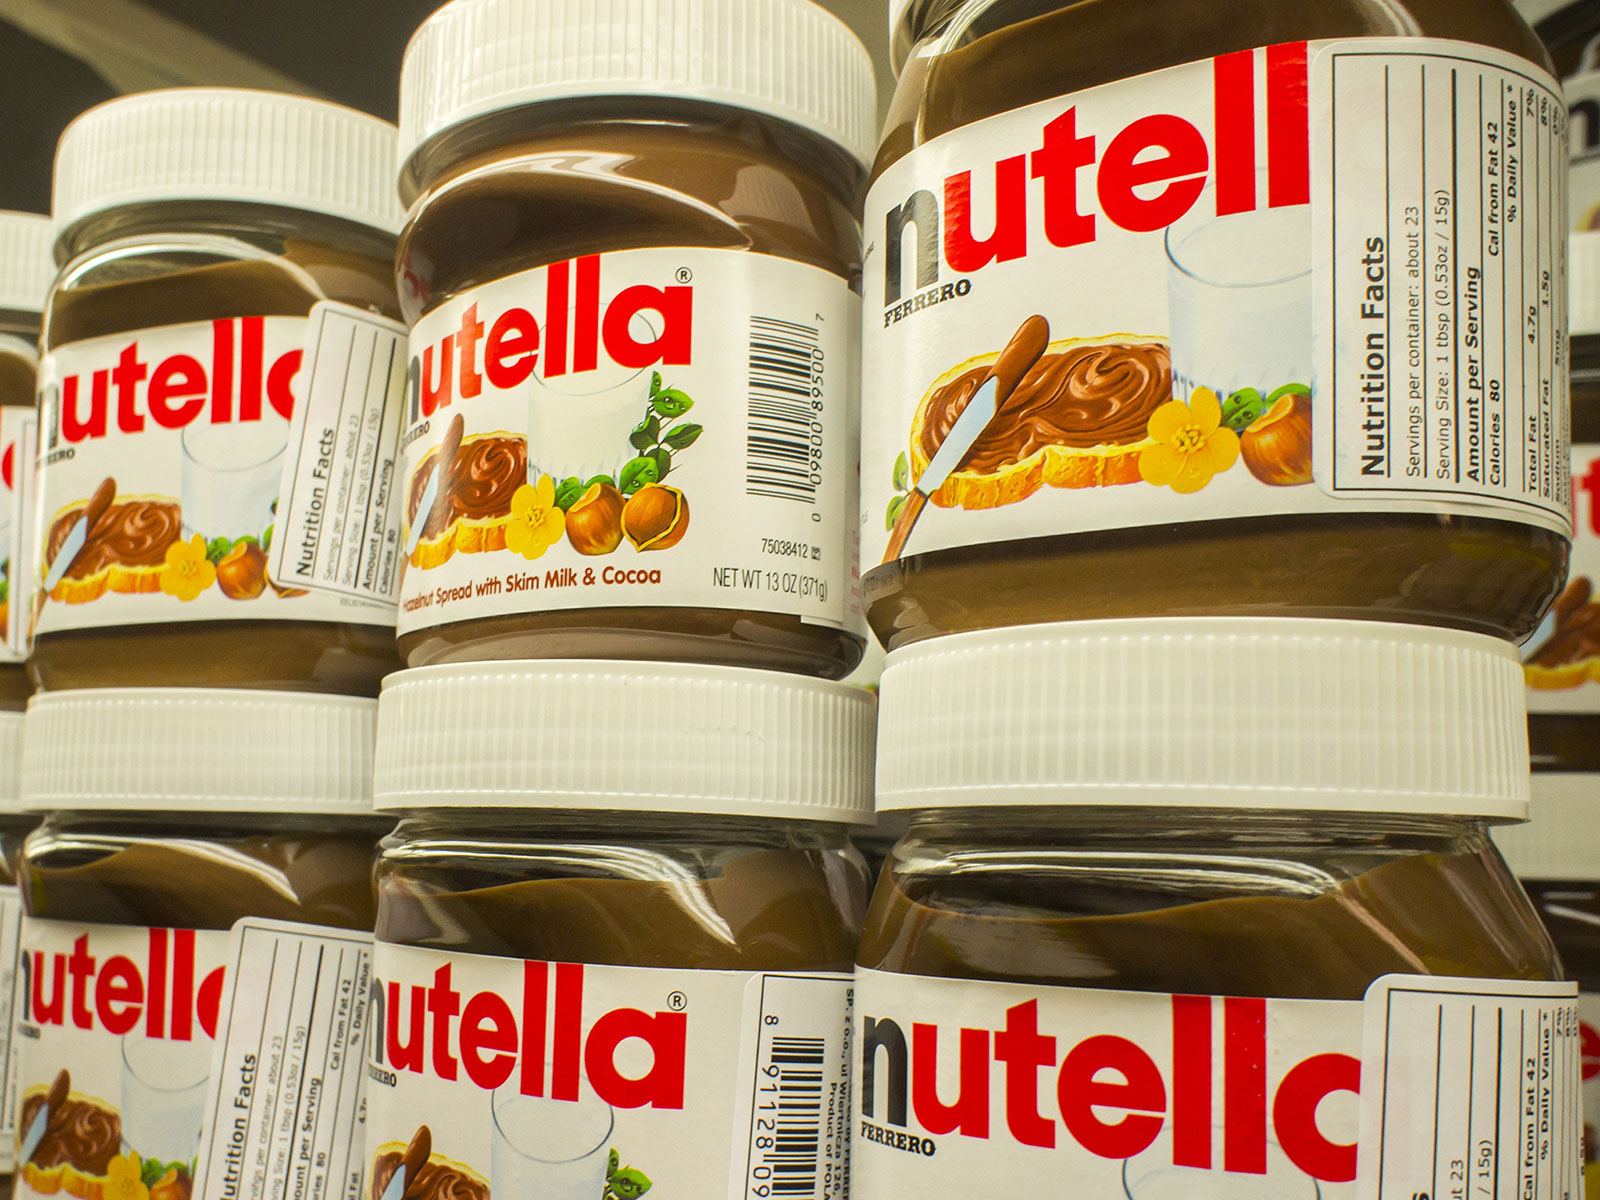 nutella stolen in germany